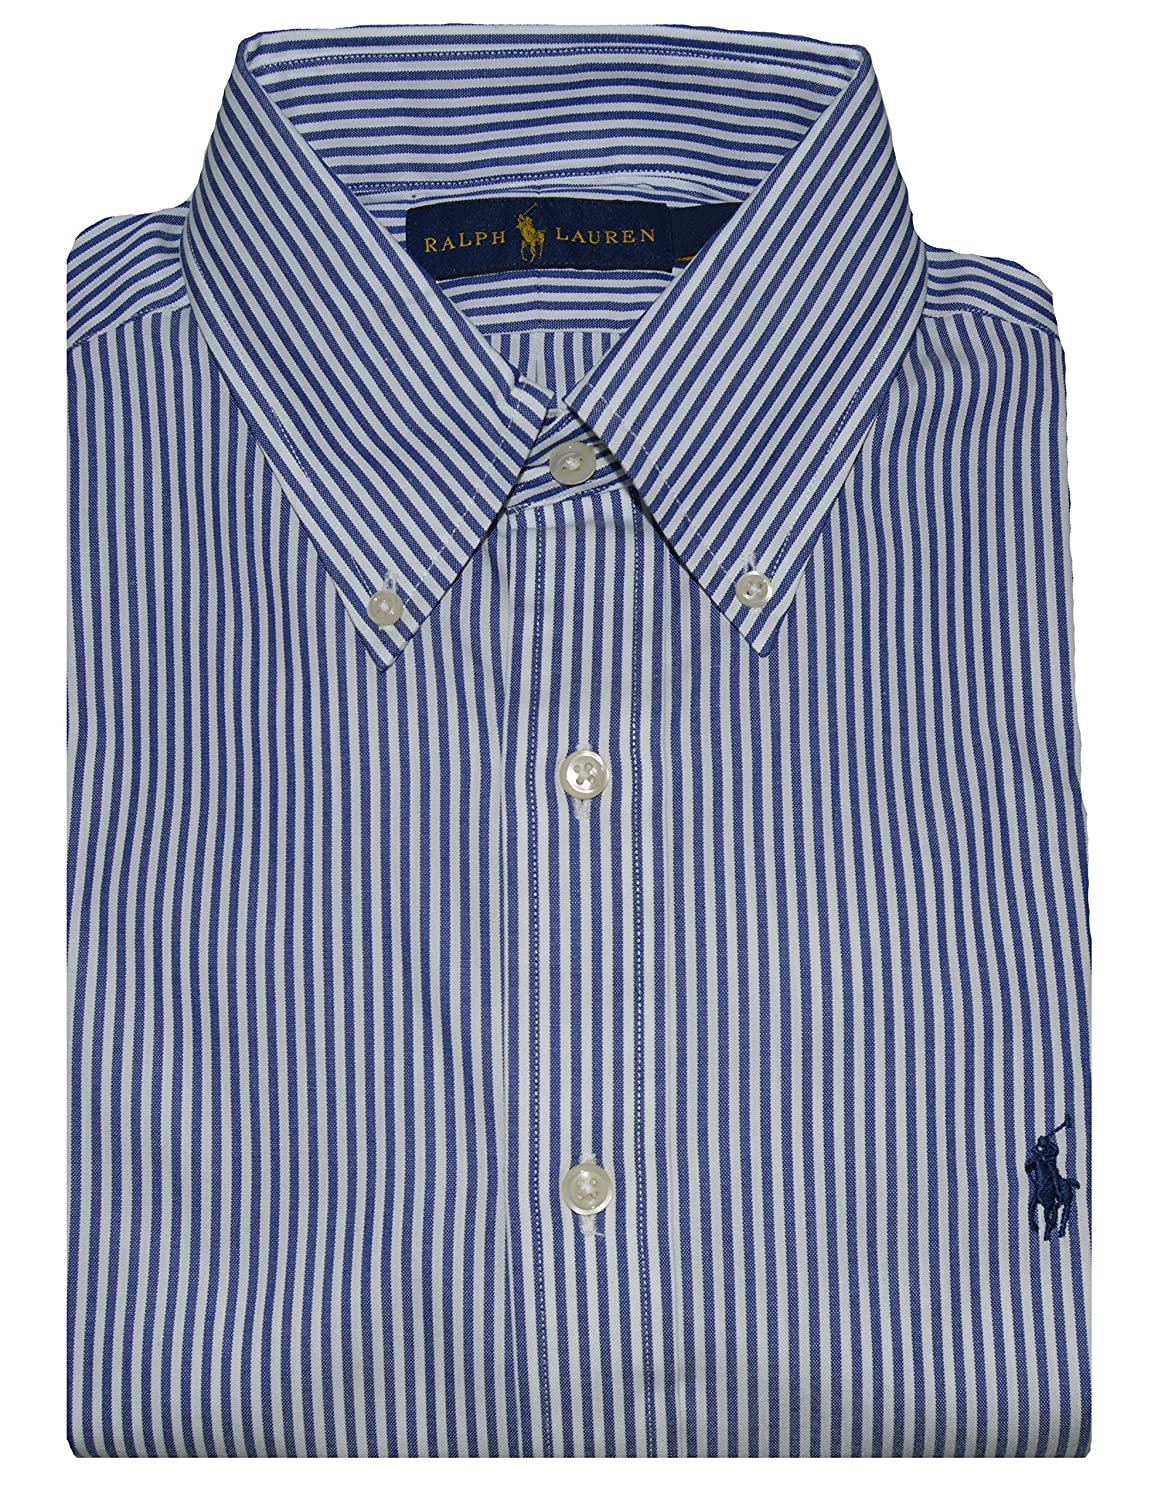 c38bcd53f13 Polo Ralph Lauren Men s Pony Logo Striped Dress Shirt (15 32 33 ...